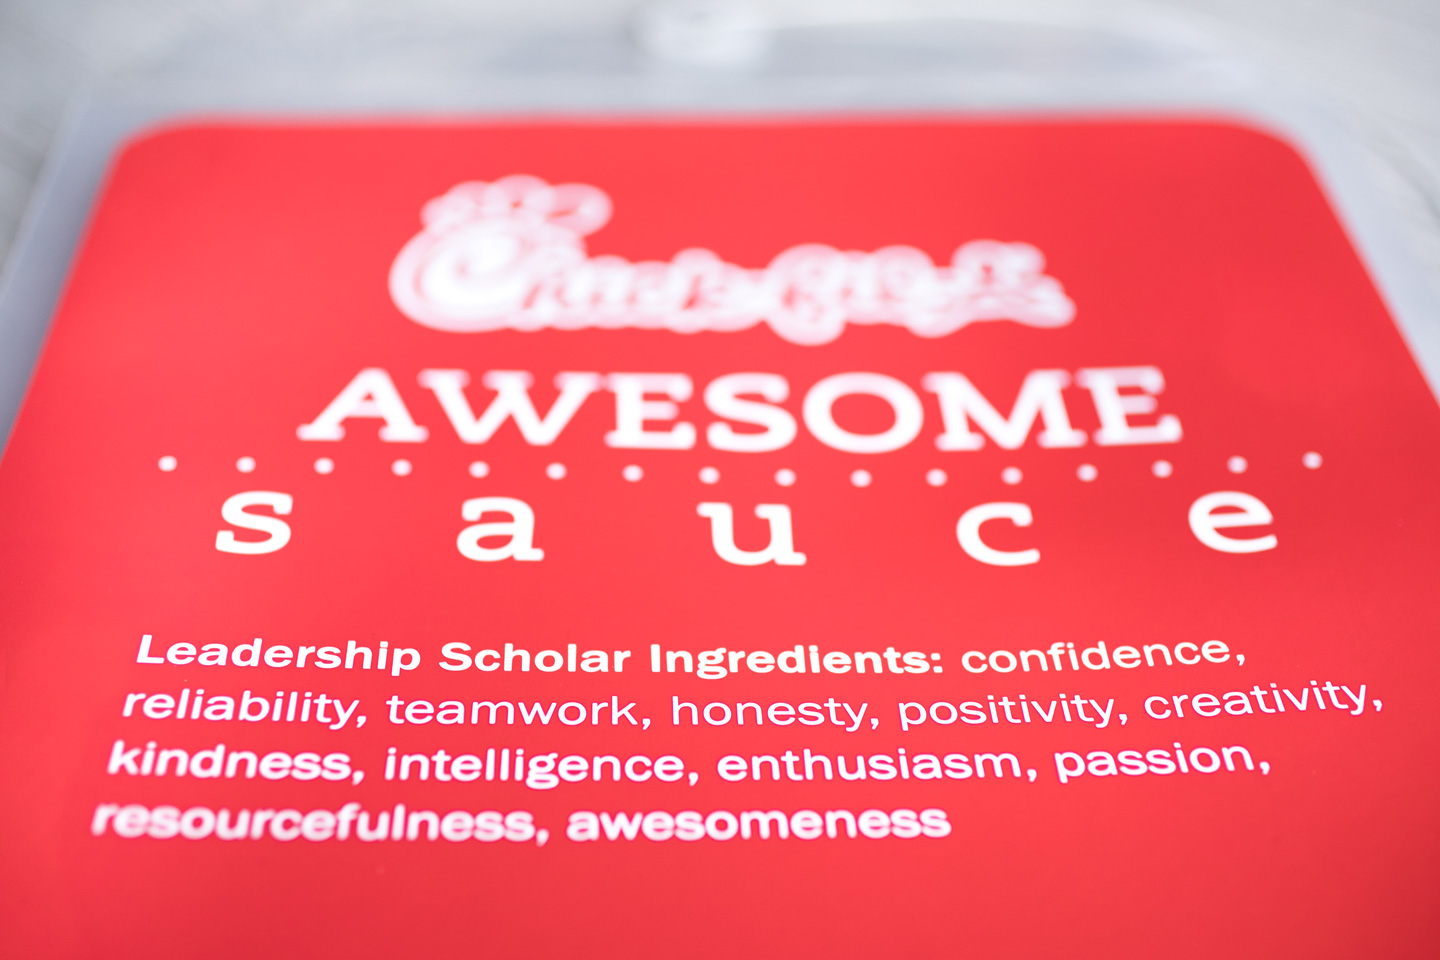 Chick-fil-A Careers, Jobs and Employment Applications Online